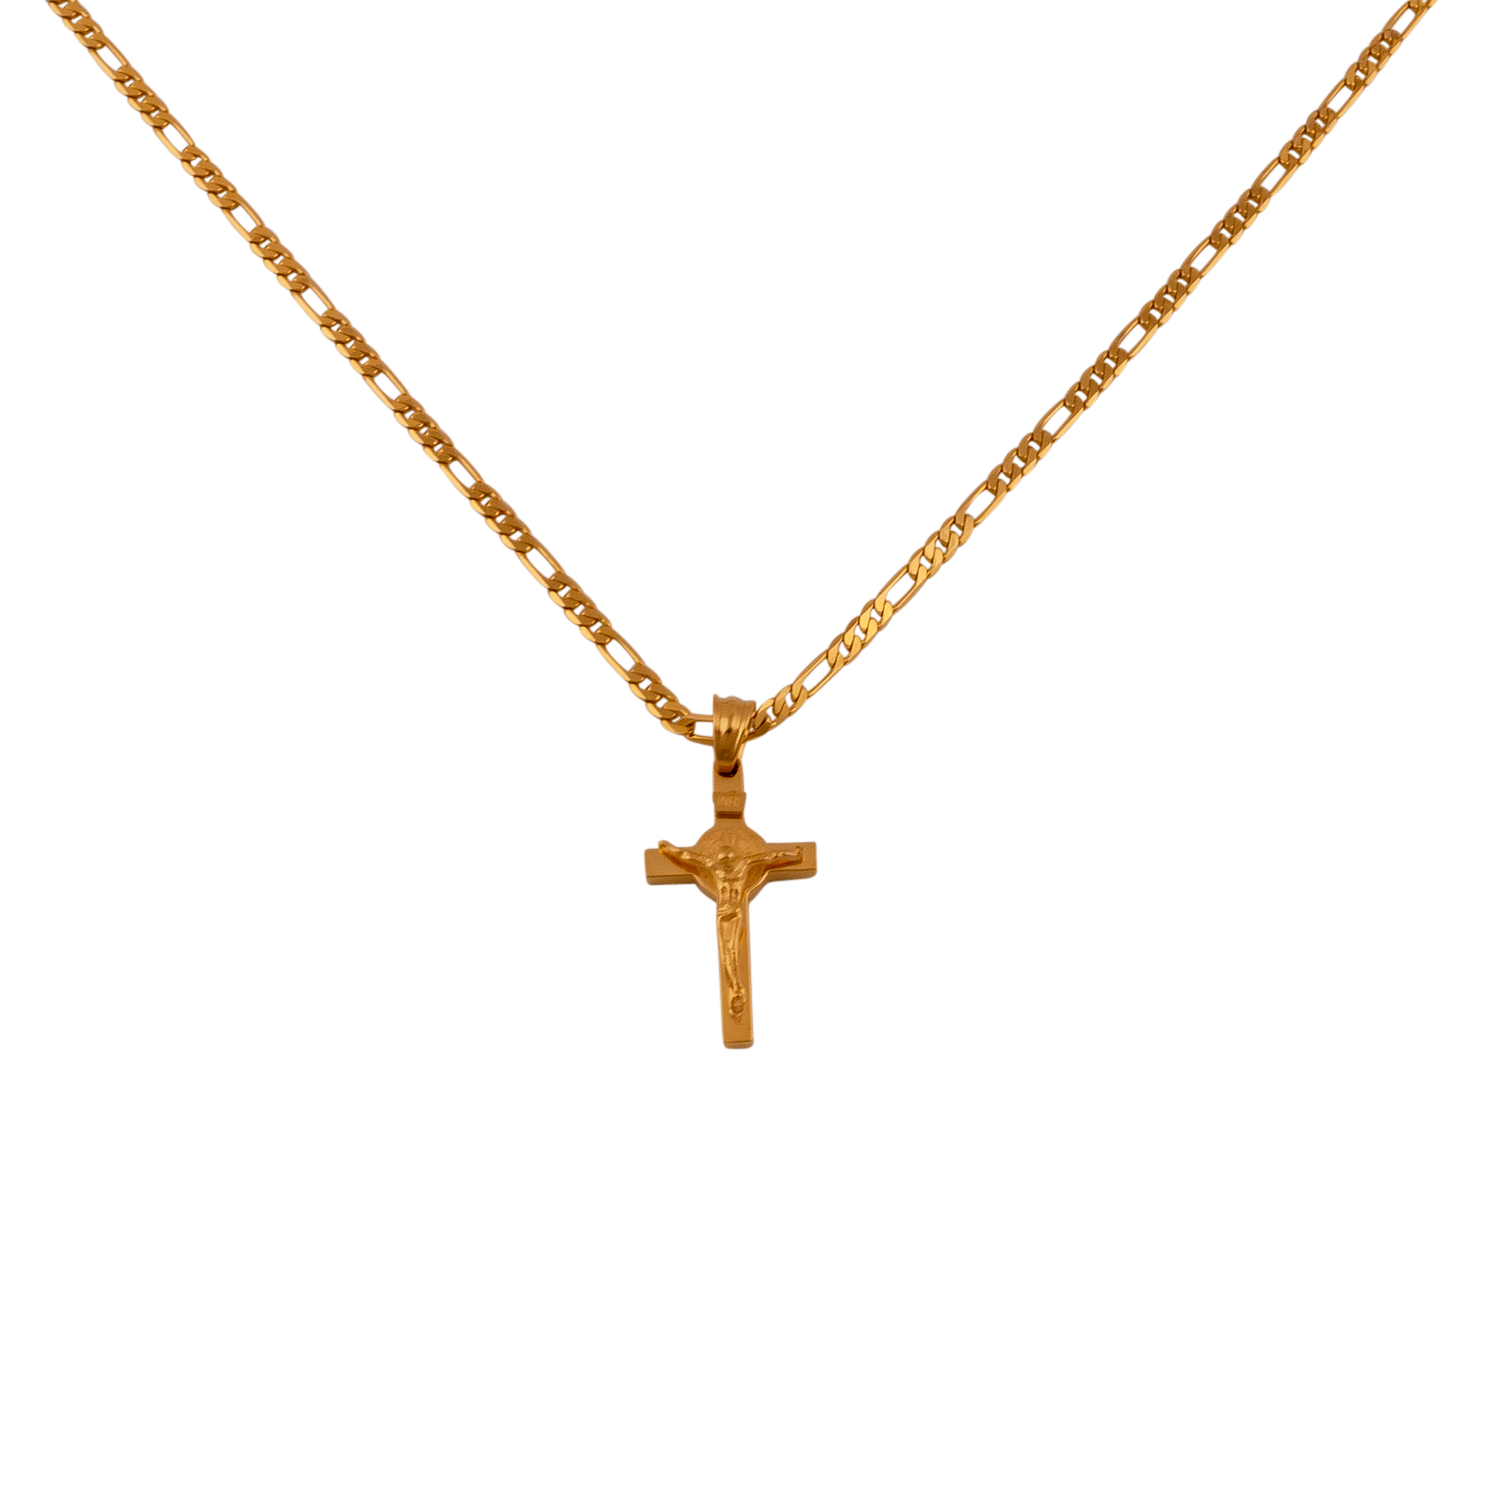 products micro gold small yellowgold jesus piece diamond mini pendant copy